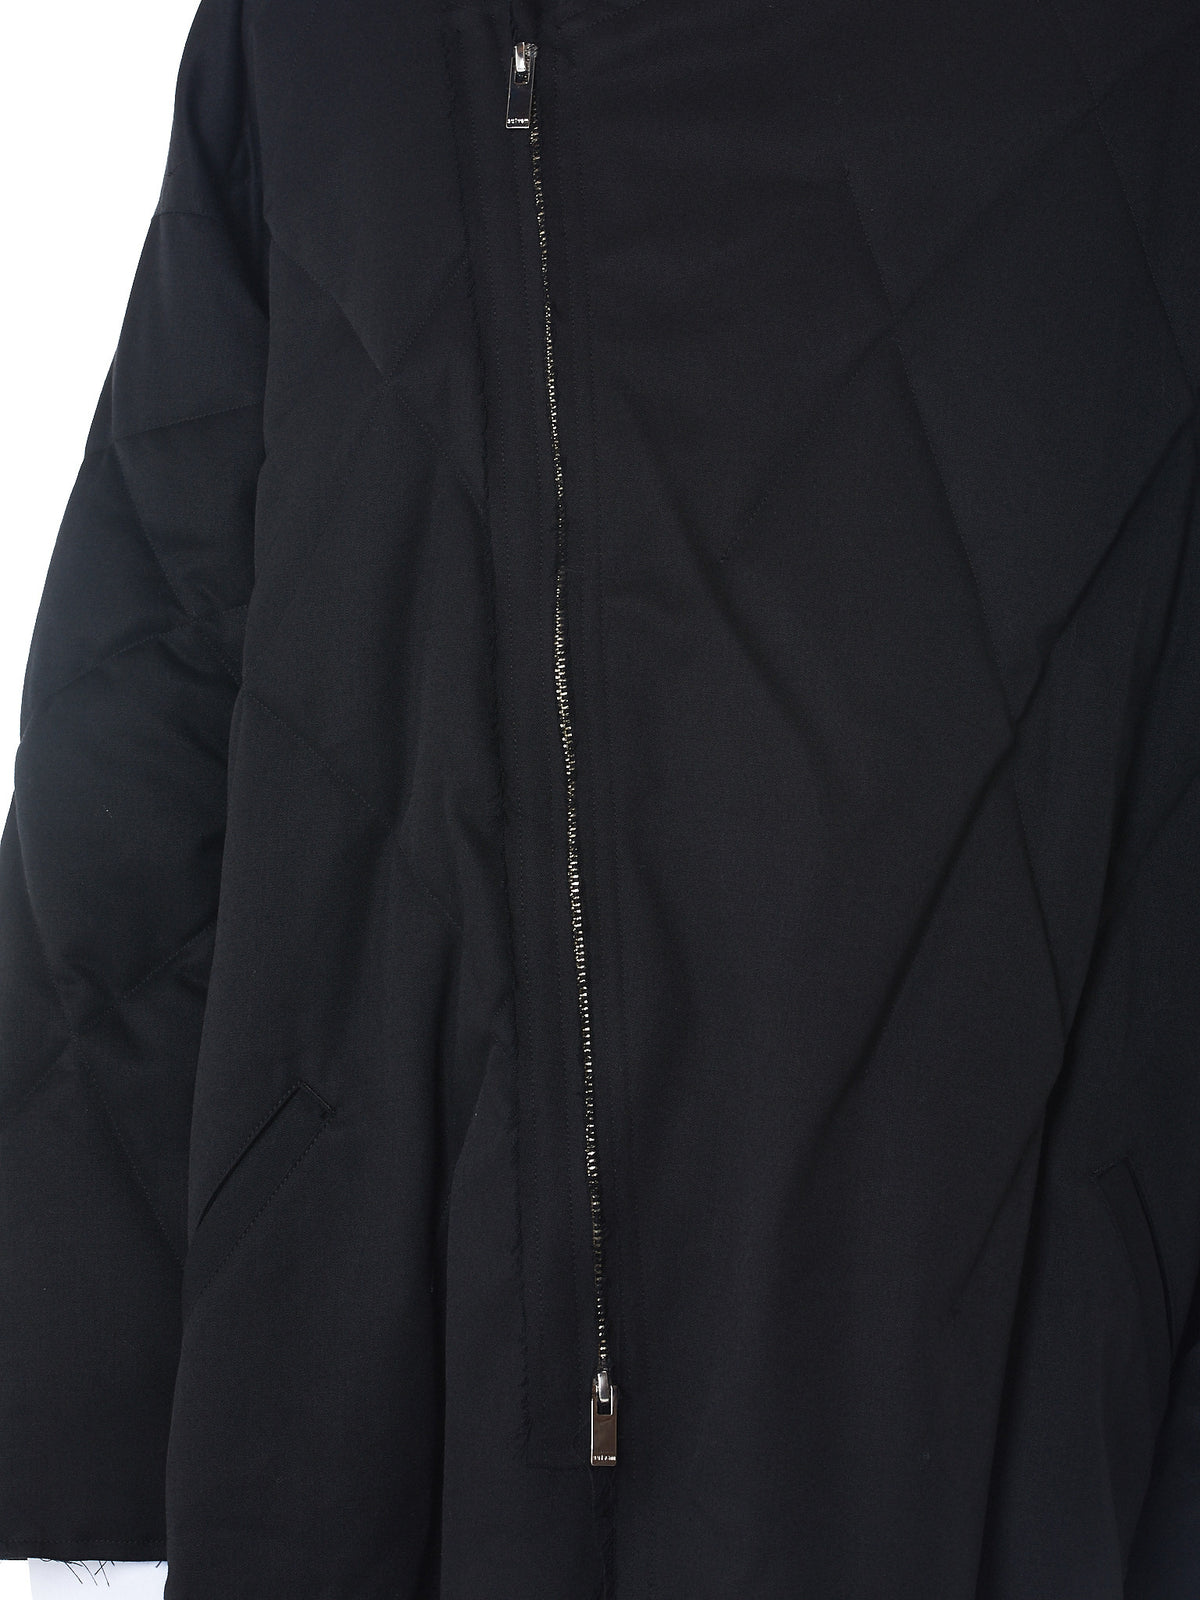 Sulvam- HLorenzo quilted coat detail 2